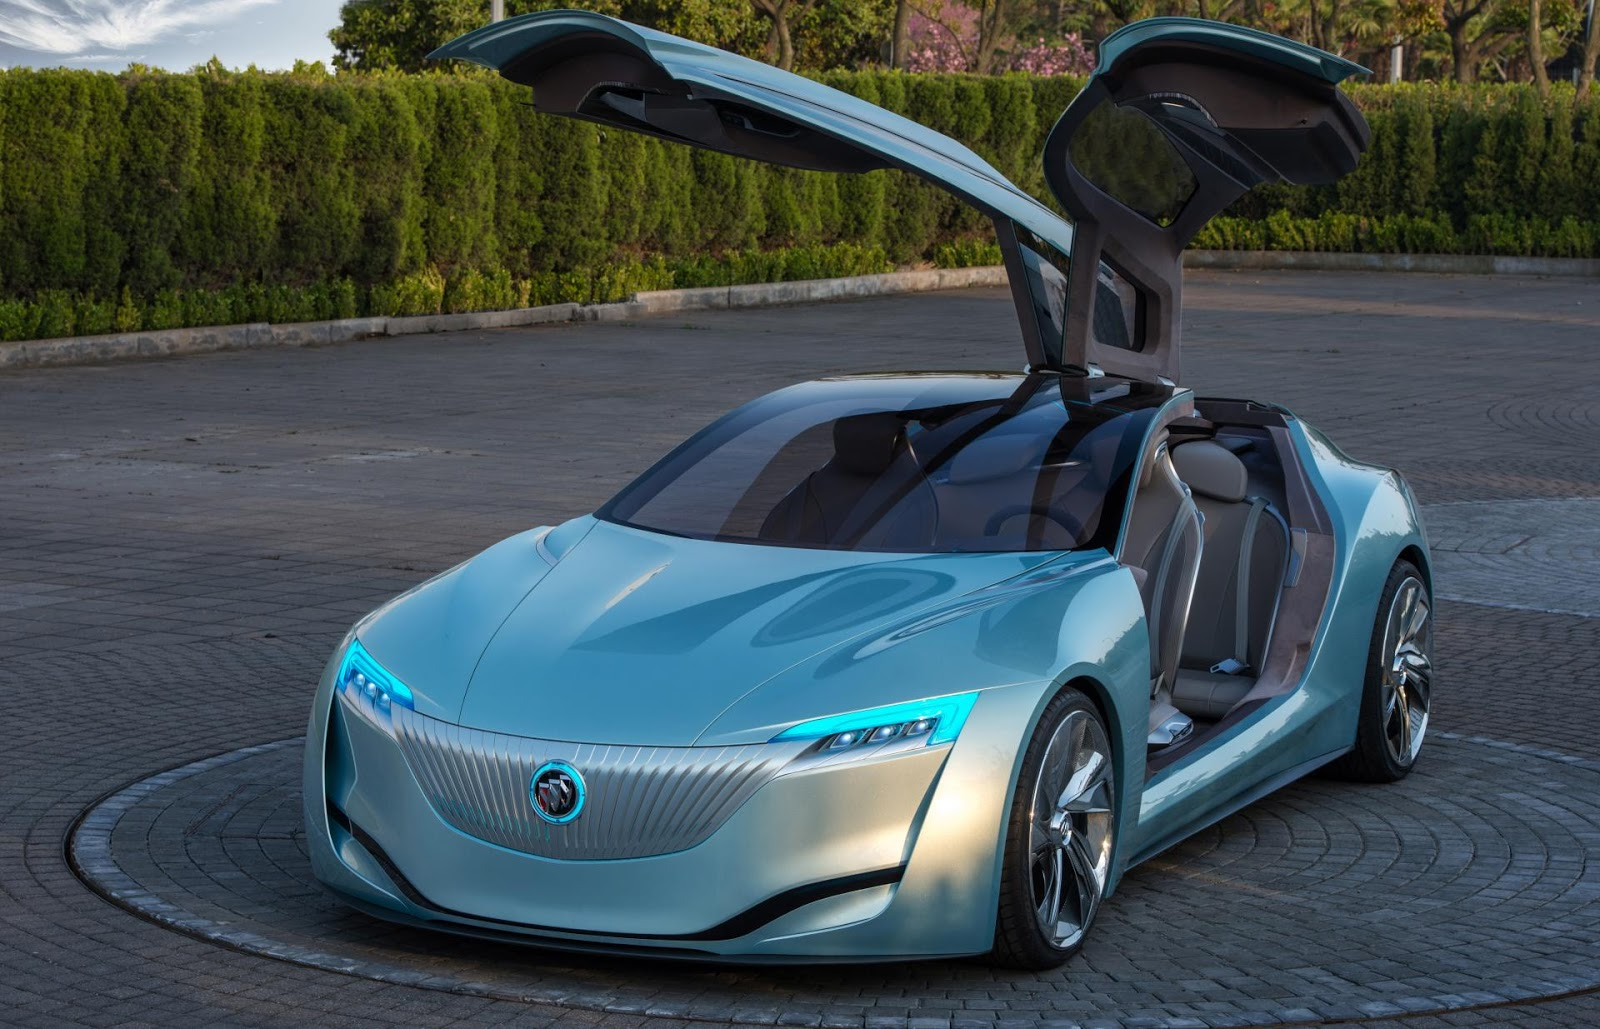 Buick Riviera Concept 2013 Hottest Car Wallpapers